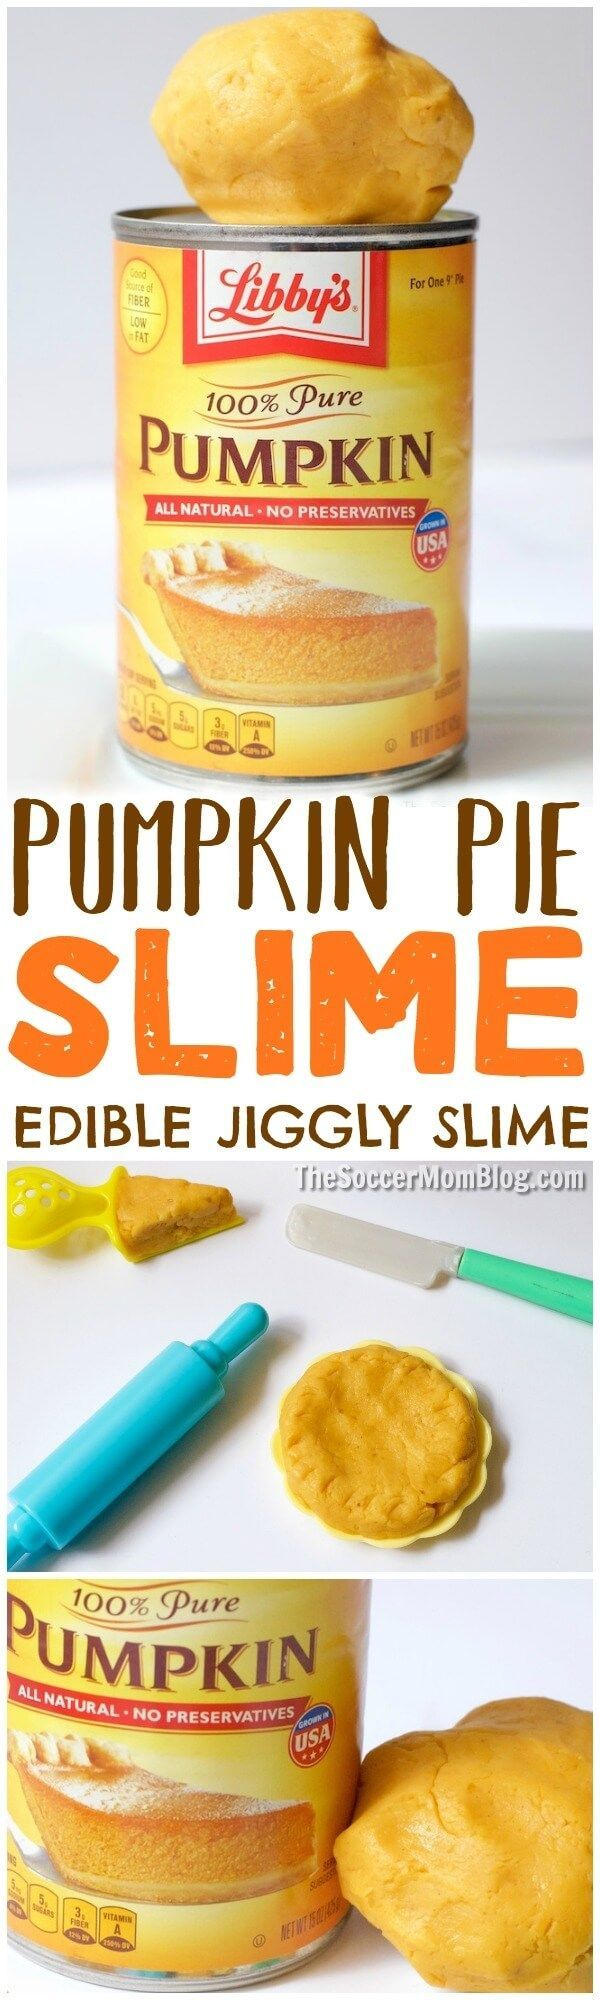 edible pumpkin pie slime for kids